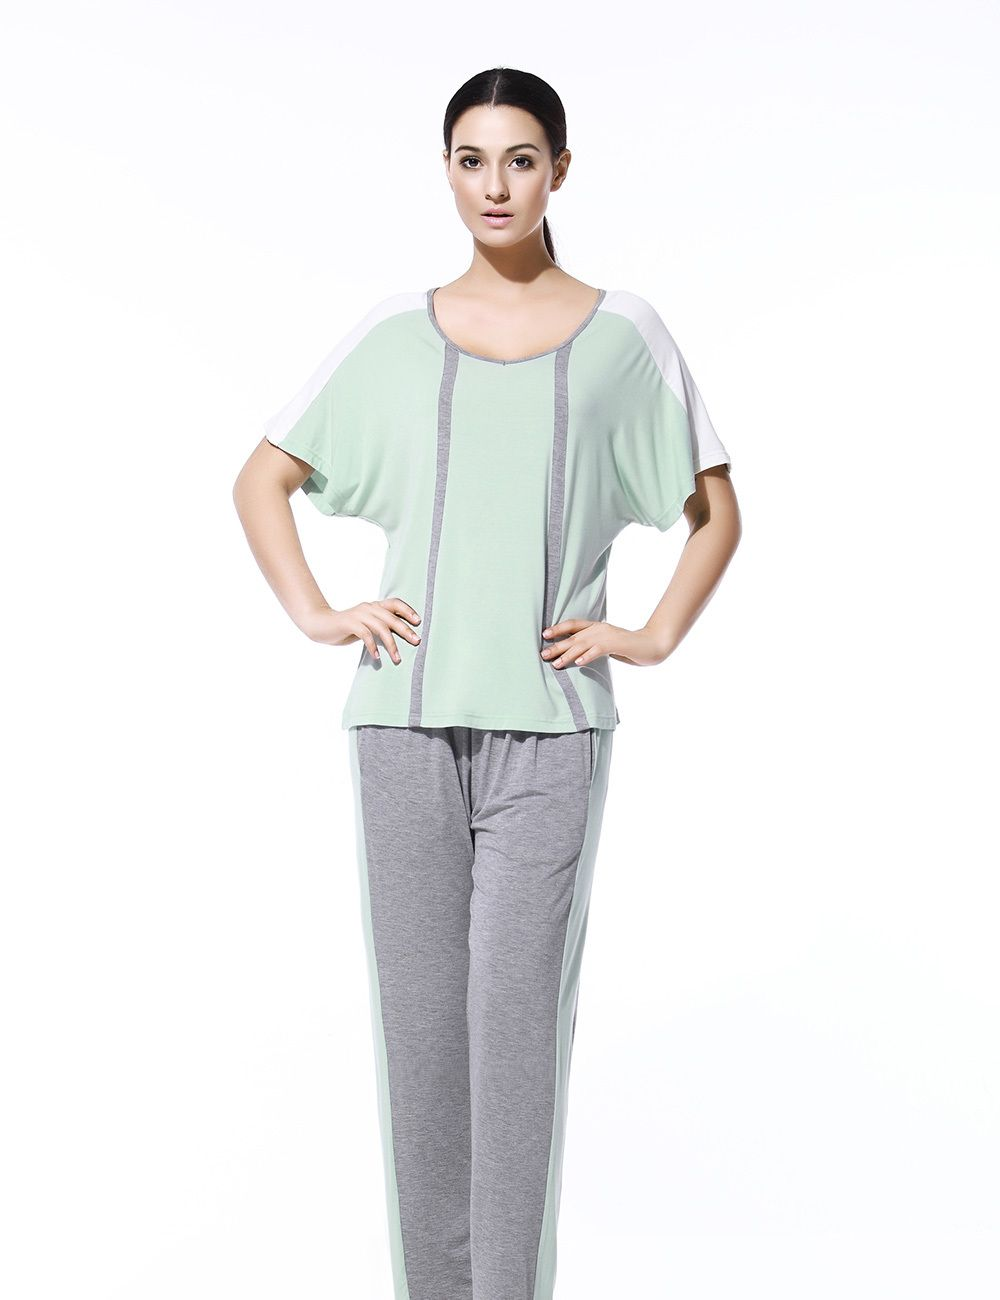 Aliexpress.com   Buy Women sleepwear sets 95% Modal 5% spendex 2 kinds of  colour big V neck women pajamas sets and loungewear 20130781 from. ffb673b37